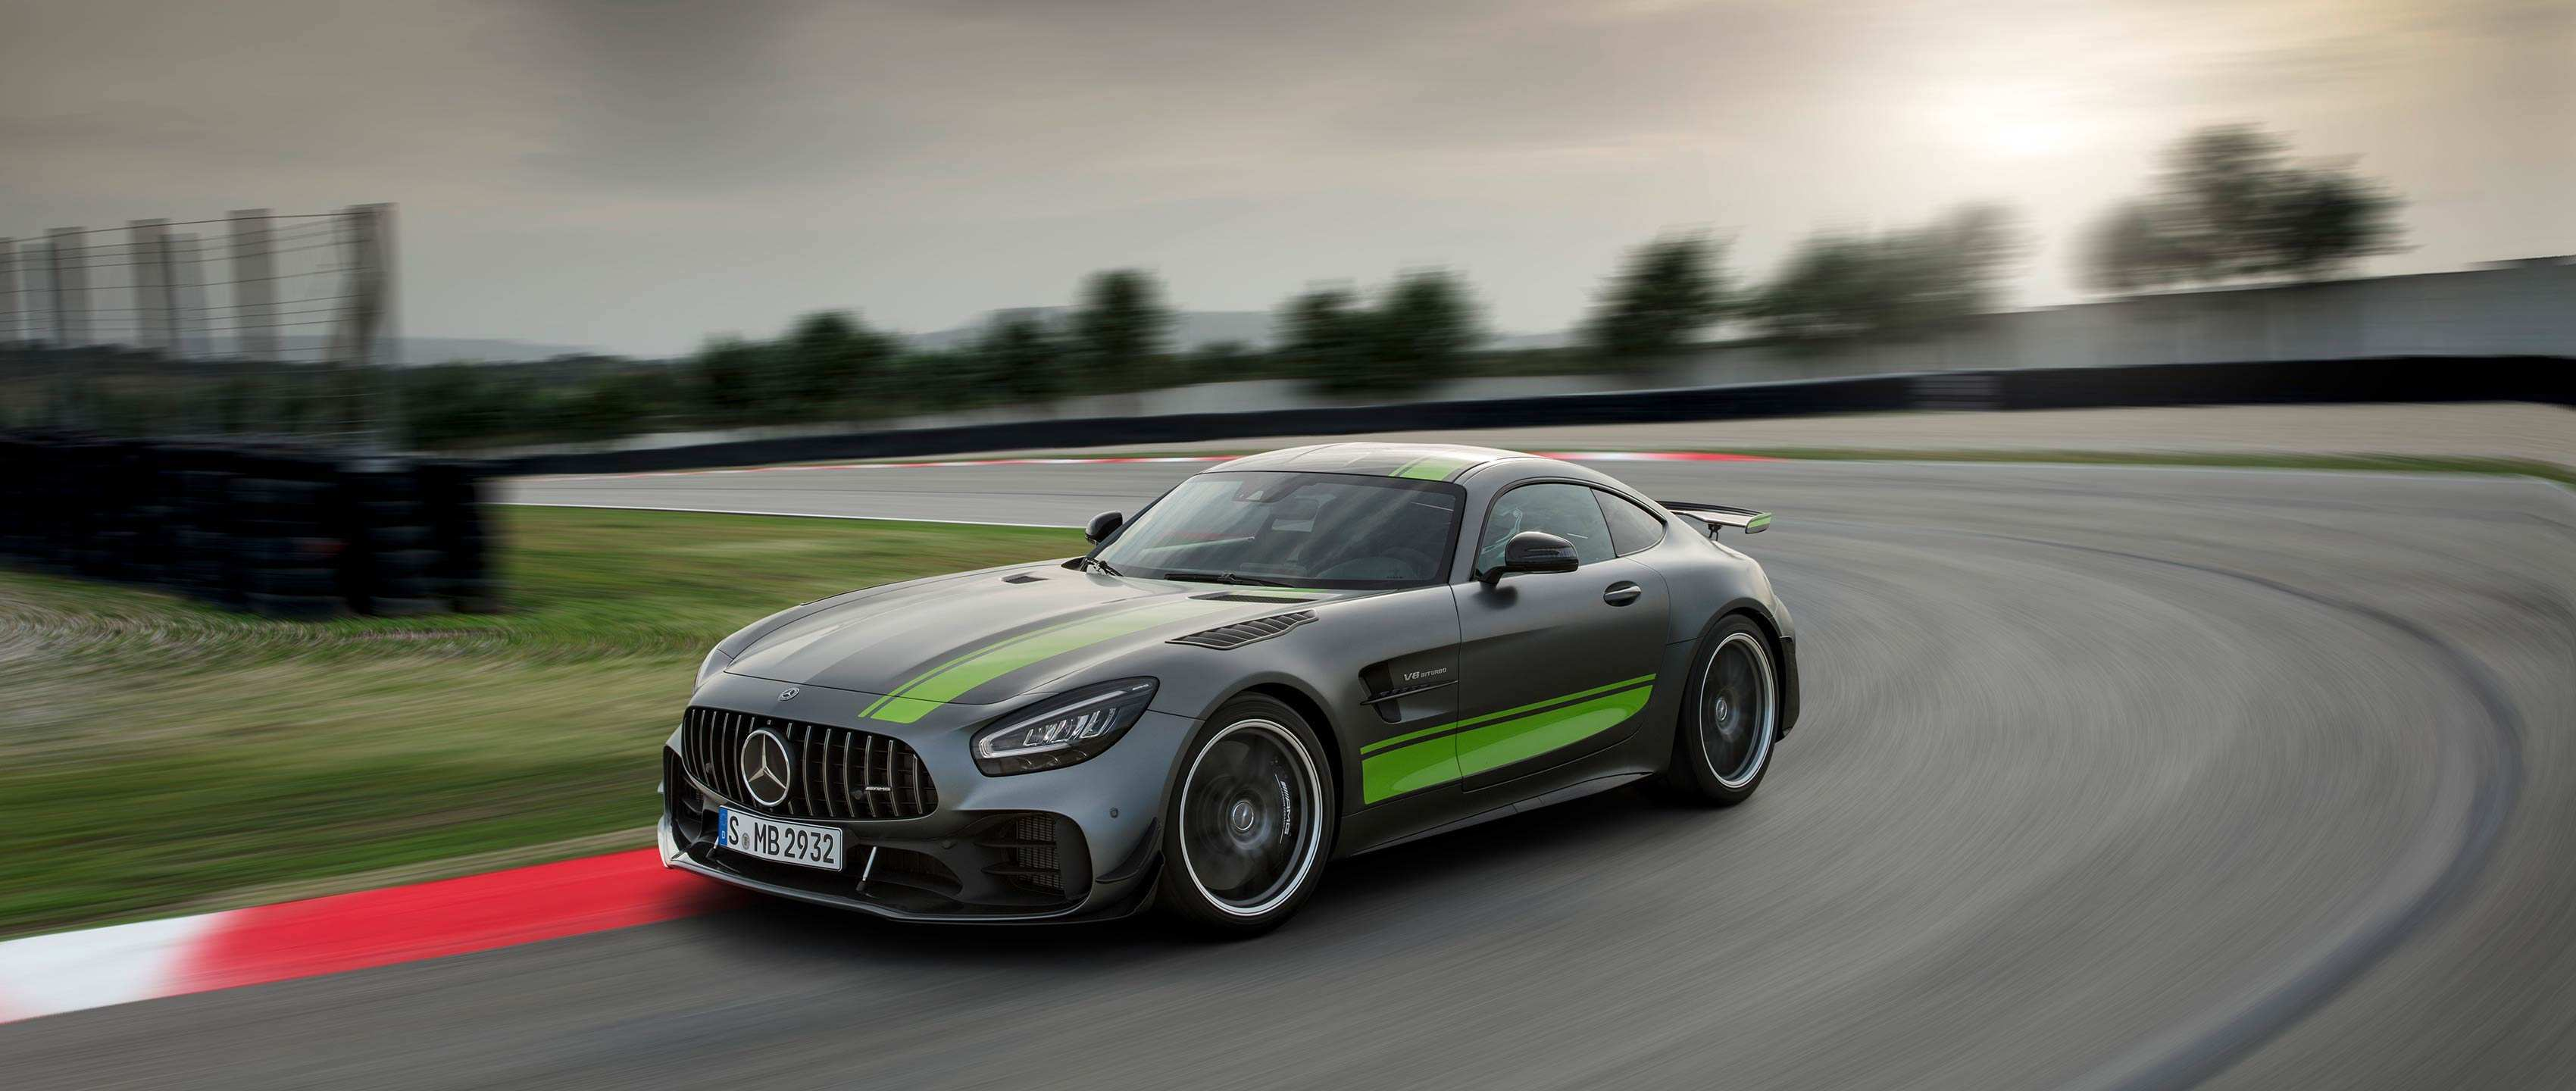 61 The Best 2019 Mercedes AMG GT Price Design And Review